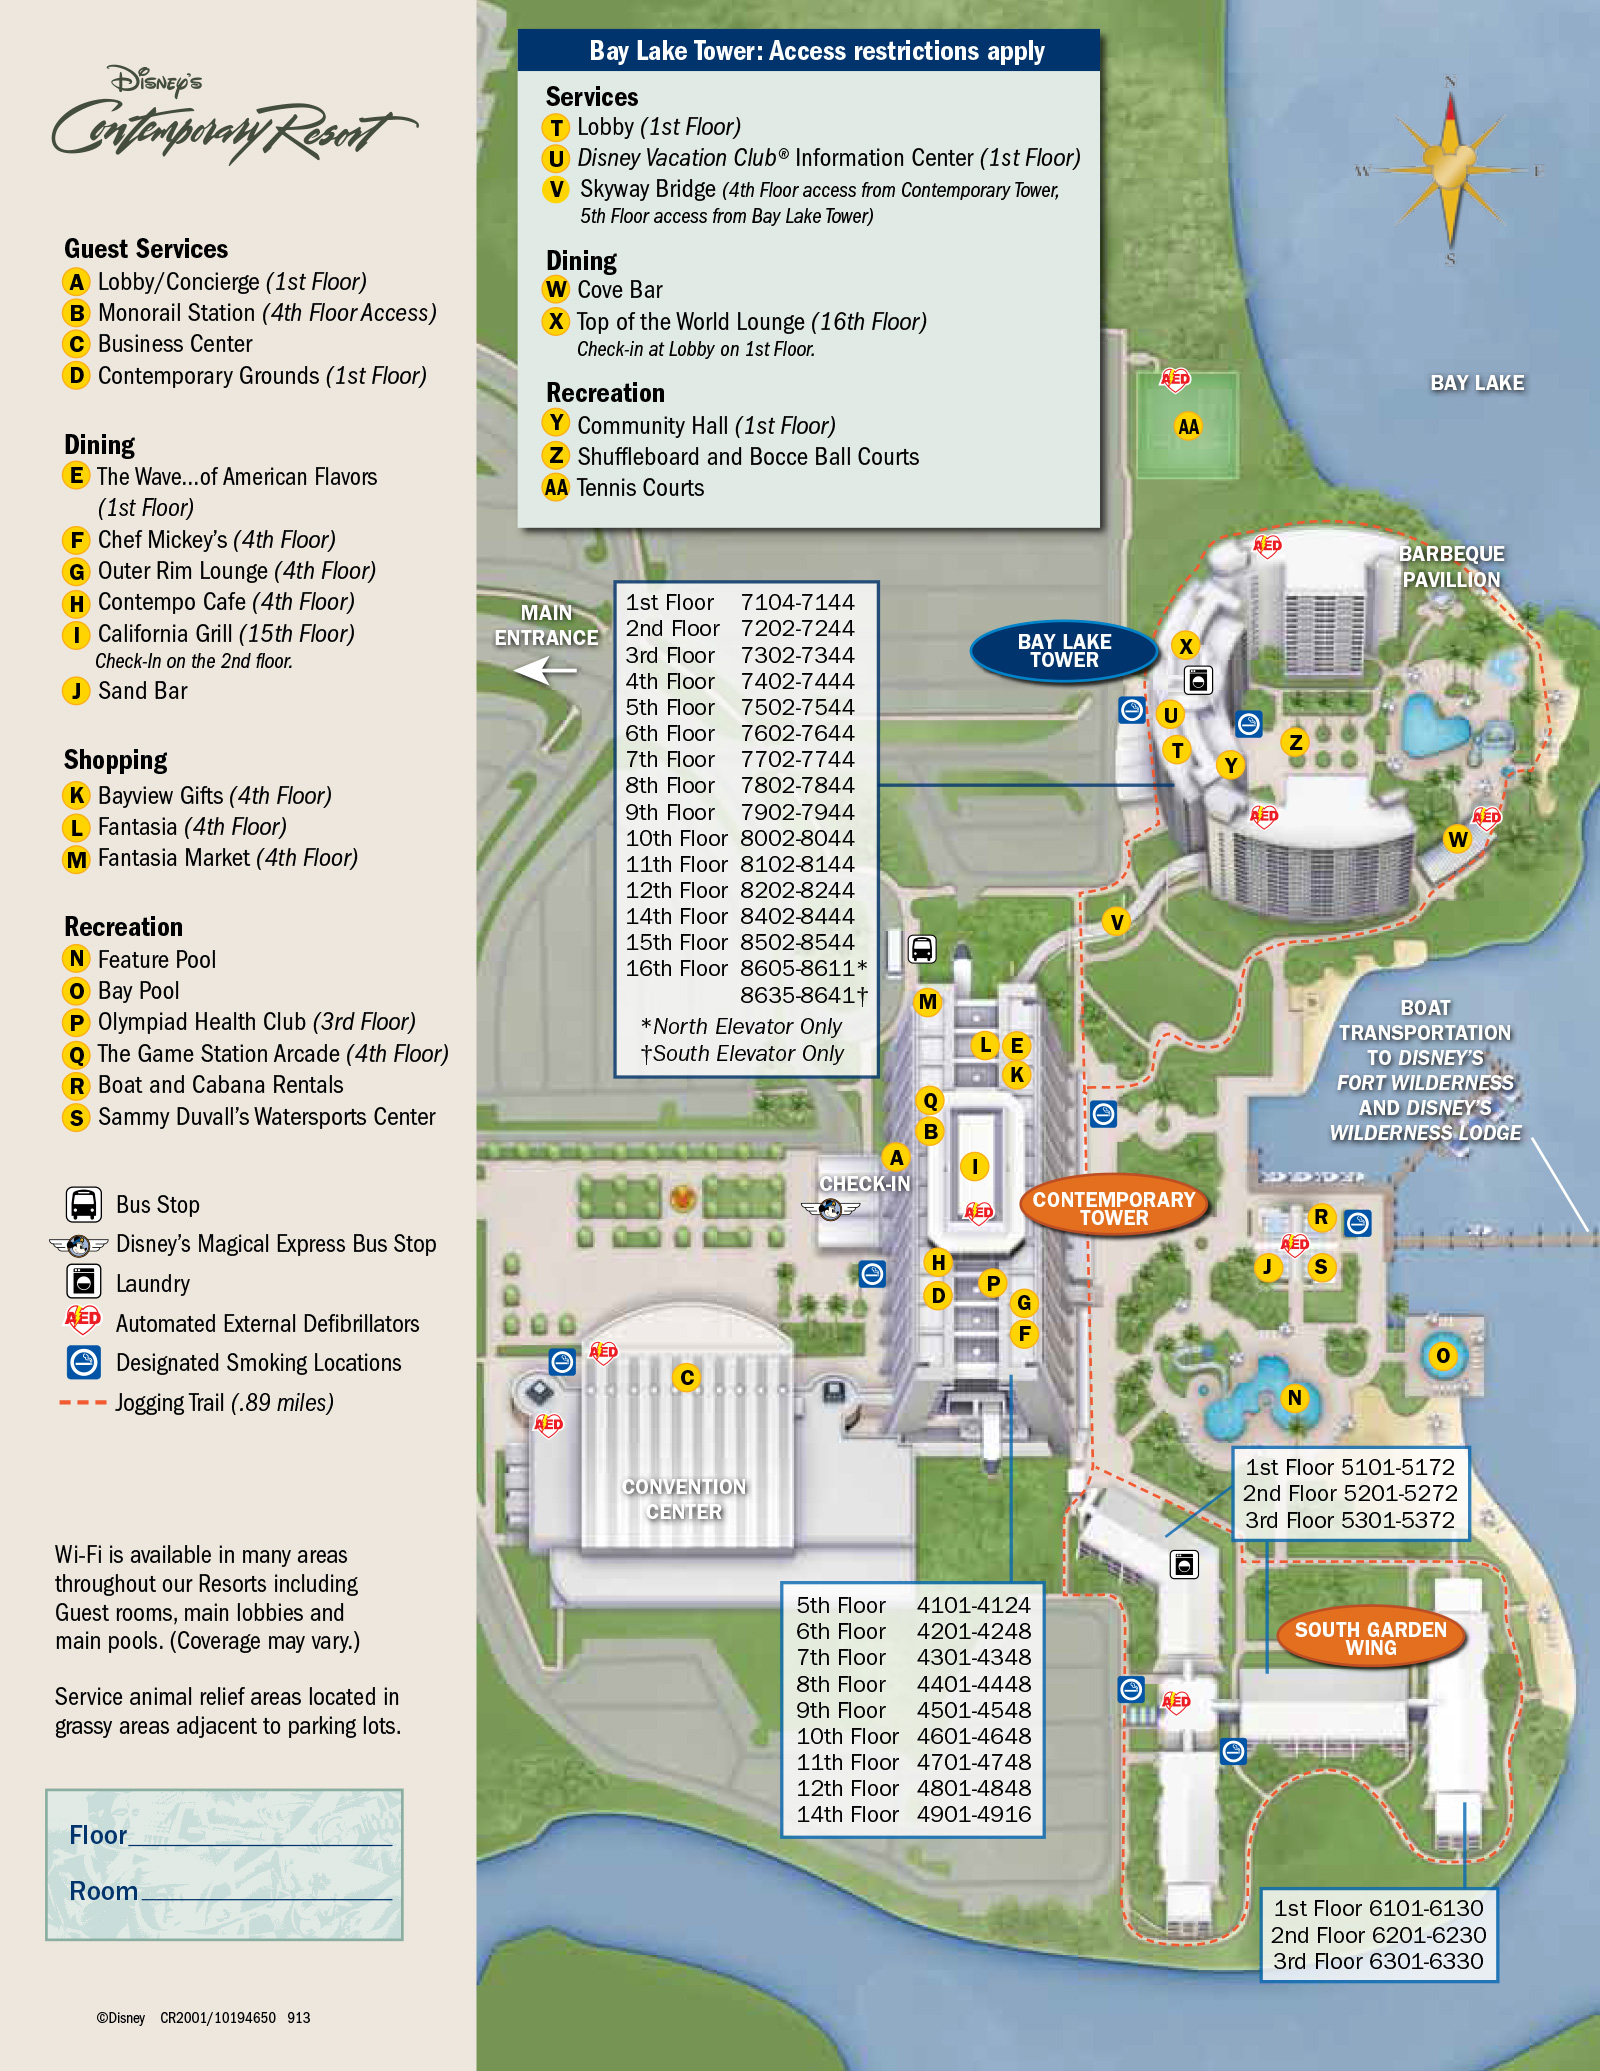 2013 Contemporary Resort Guide Map Photo 1 Of 1